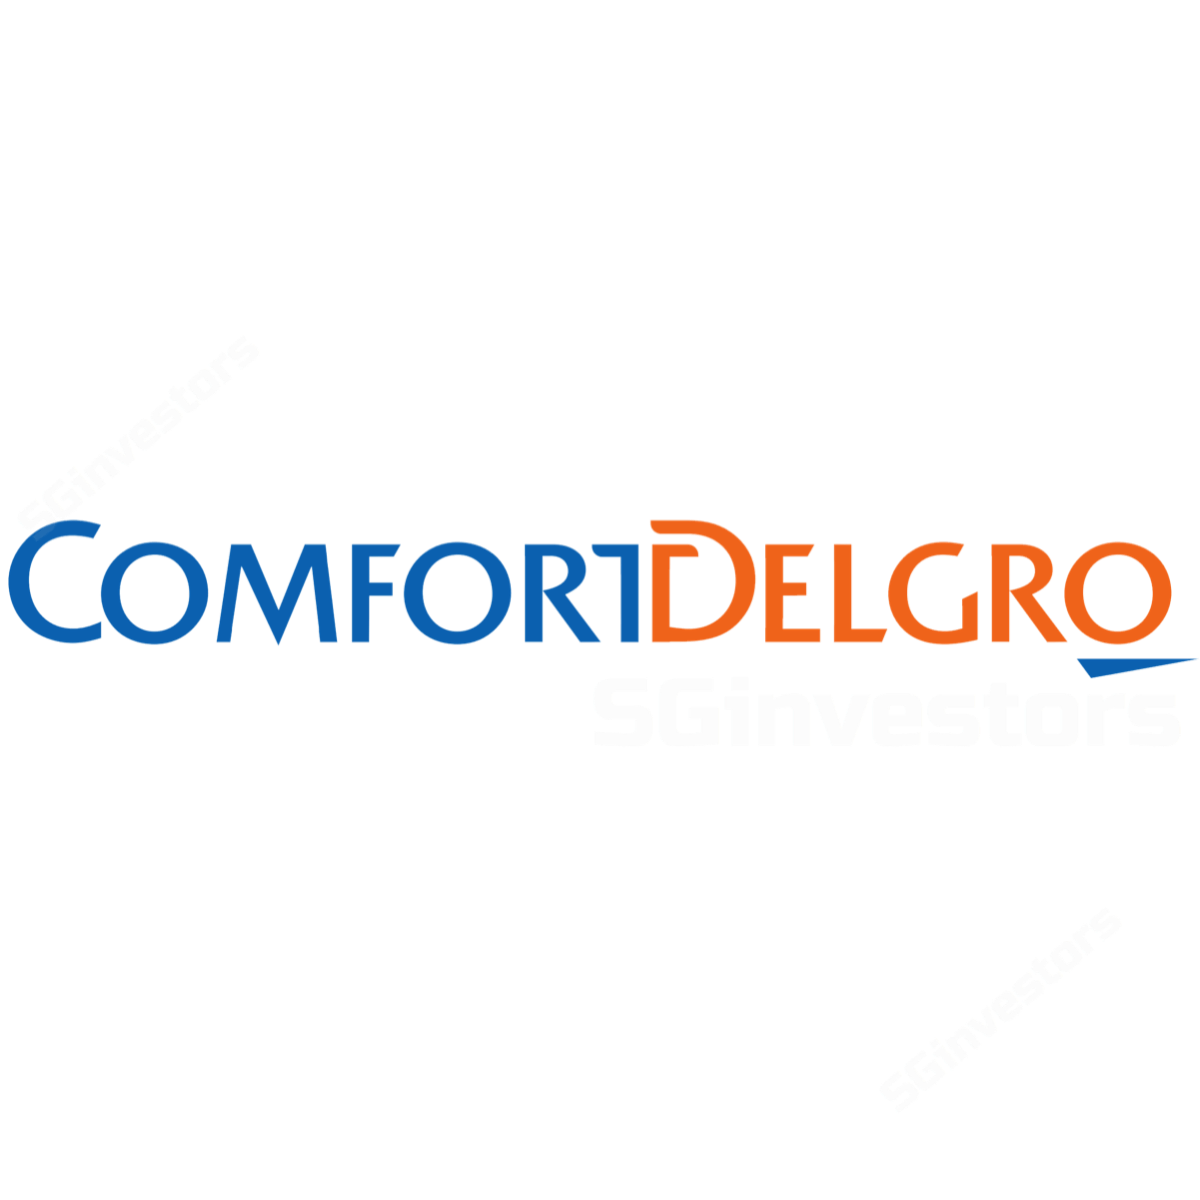 ComfortDelGro - CIMB Research 2016-11-12: Upbeat underlying businesses; M&A to drive growth